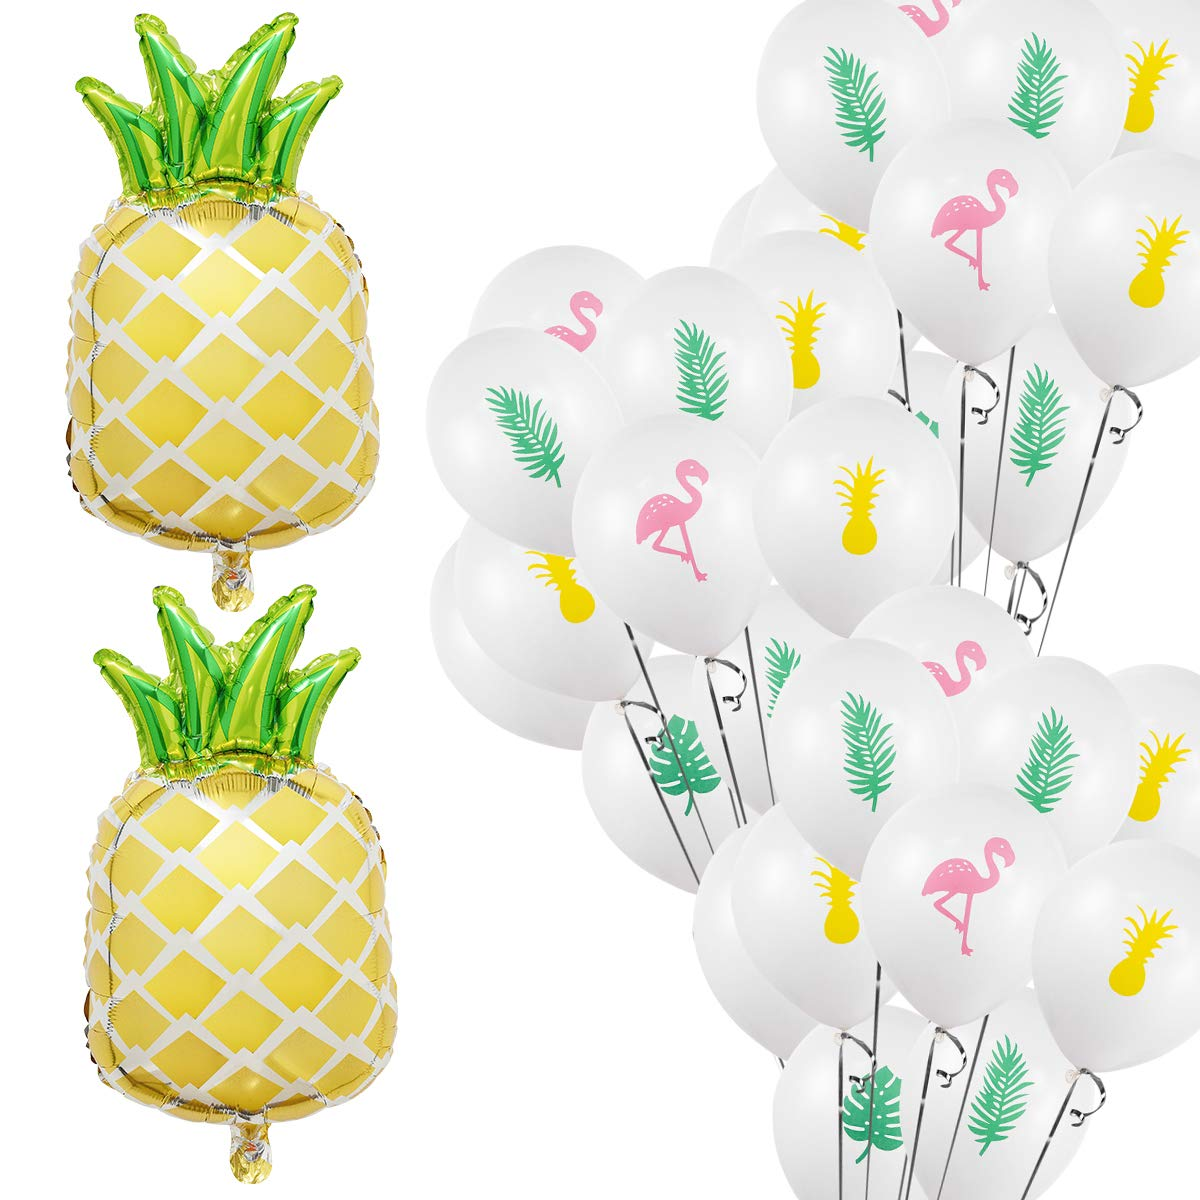 Easternhope 42pcs Pineapple Balloons Set Flamingo For Summer Hawaii Luau Pool Party Decoration Supplies Buy Summer Party Decoration Supplies Hawaiian Summer Pool Party Decorations Summer Party Decoration Supplies Product On Alibaba Com